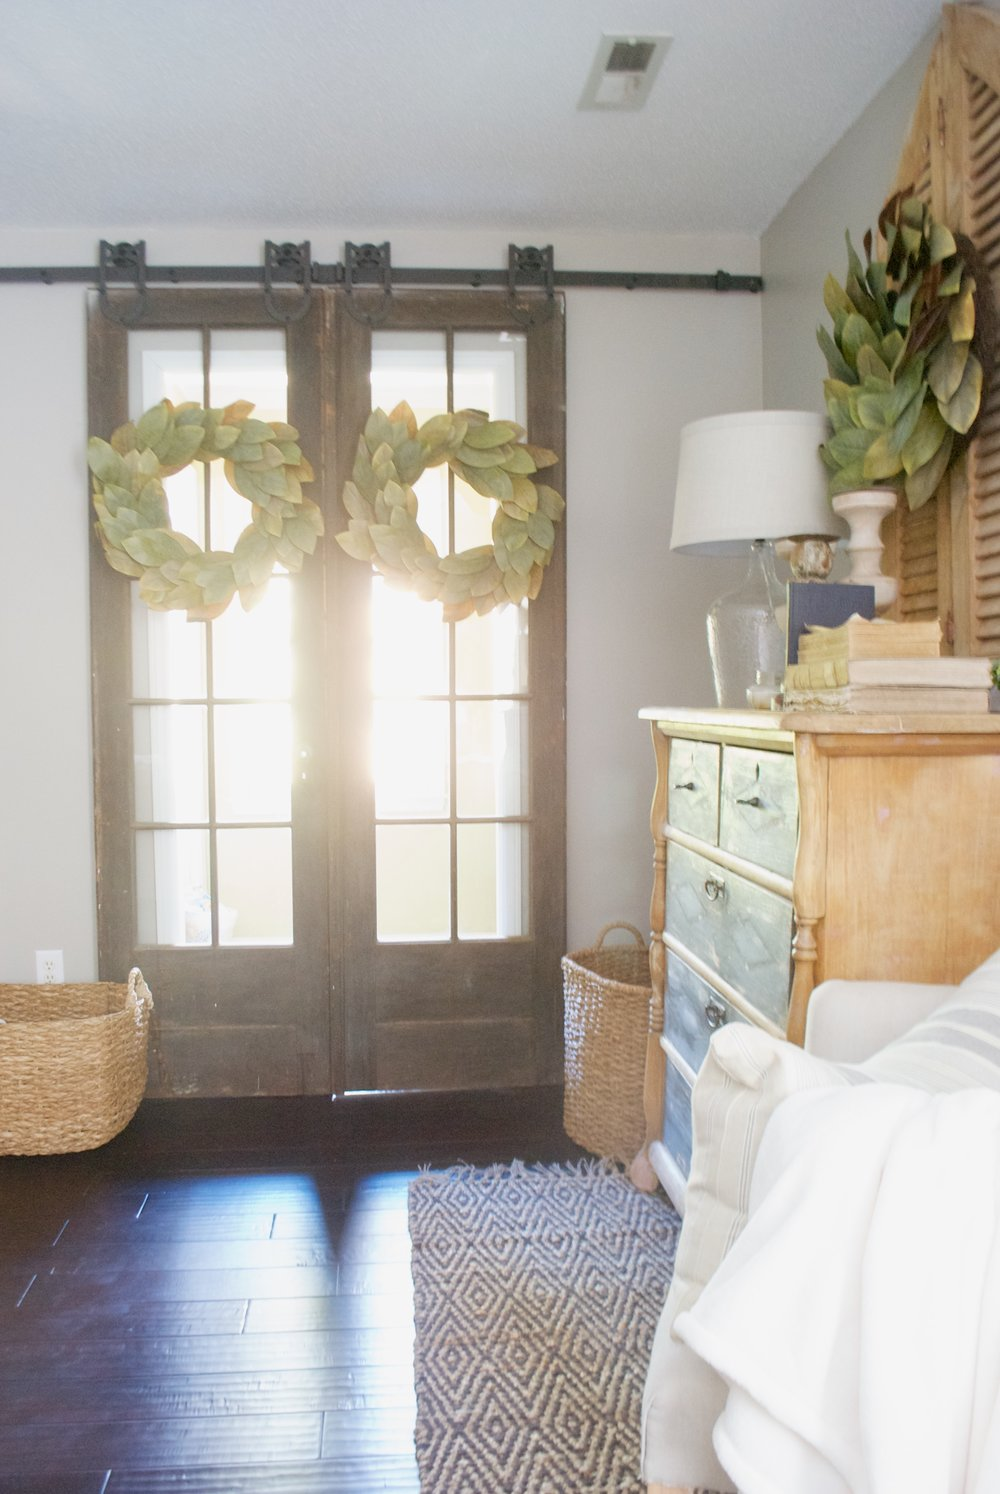 Plum Pretty Decor And Design Farmhouse Master Bedroom Tour  French Doors And  Magnolia Wreaths